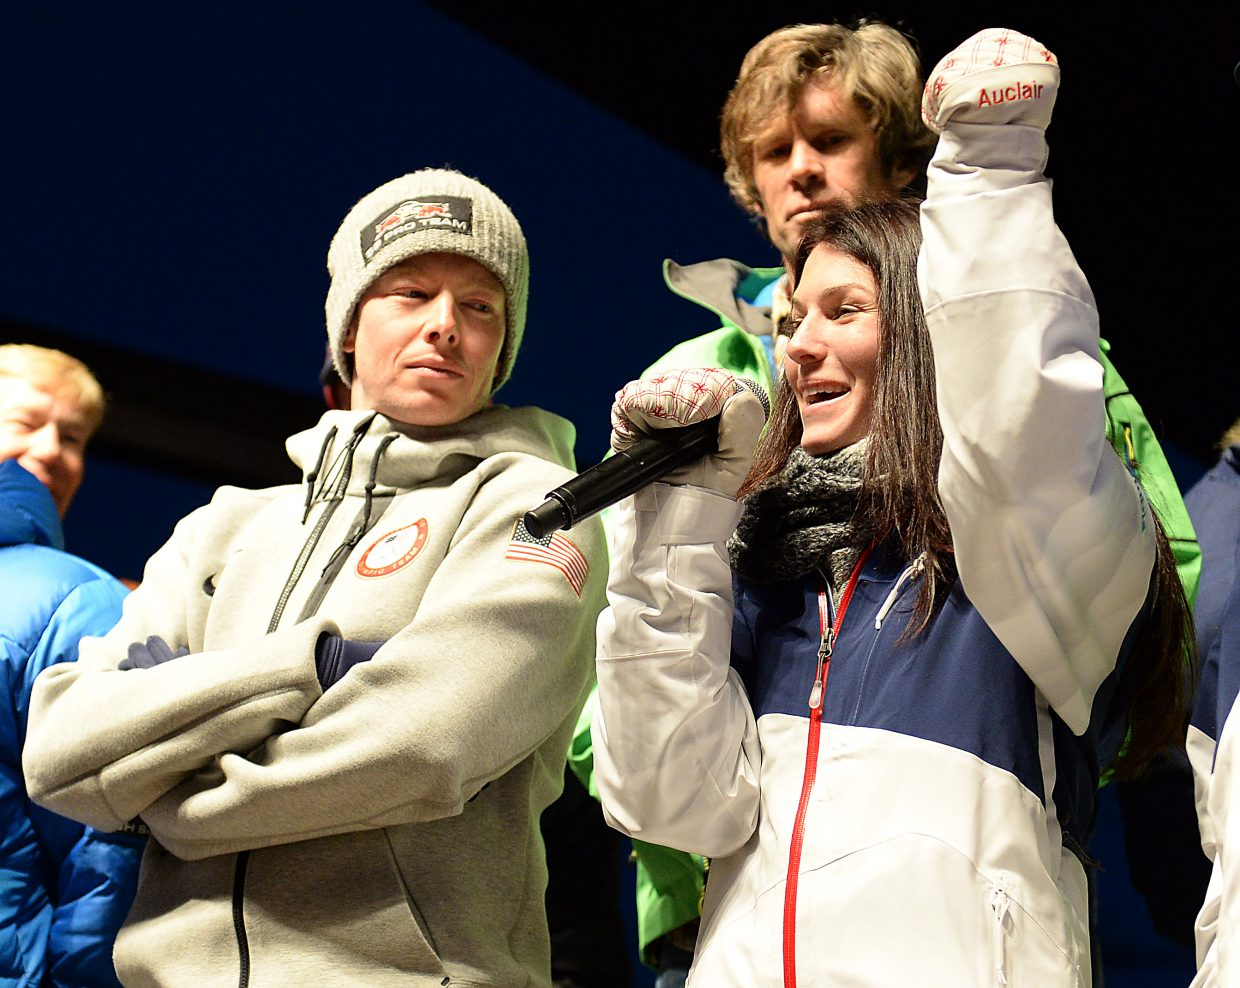 Eliza Outtrim speaks on Saturday at the Olympic sendoff event at Steamboat Ski Area. Outtrim, a Lowell Whiteman graduate, will compete in freestyle moguls in her first Olympics next month.